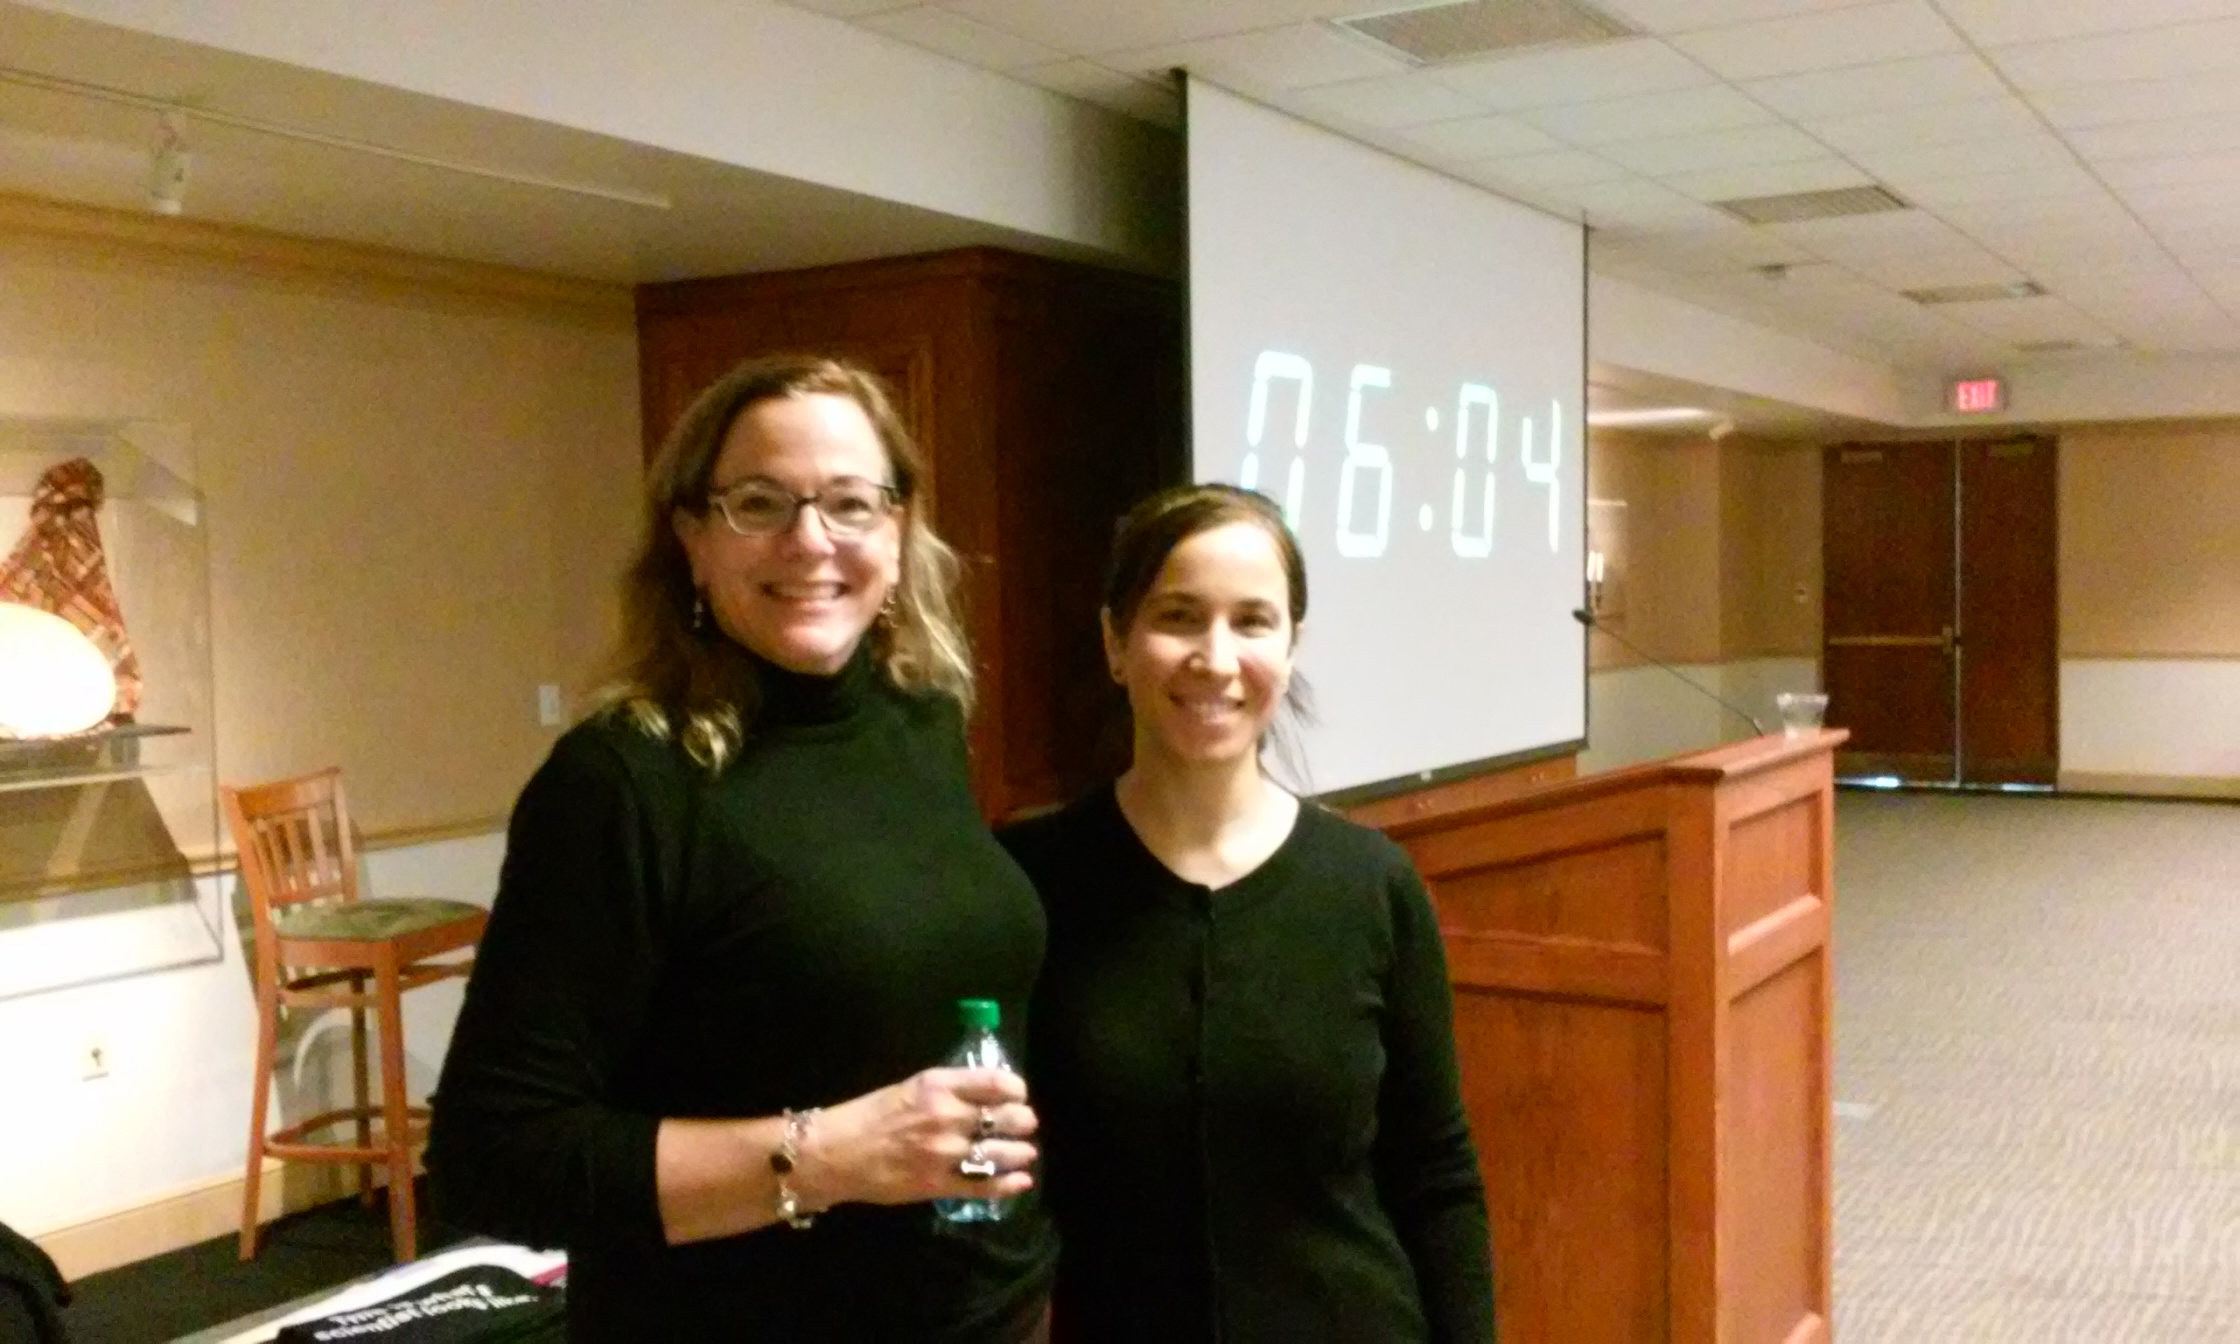 Dr. Cynthia Keppel (keynote speaker) and Dr. Fatiha Benmokhtar (DU Physics) at the Undergraduate Career Worskshop.